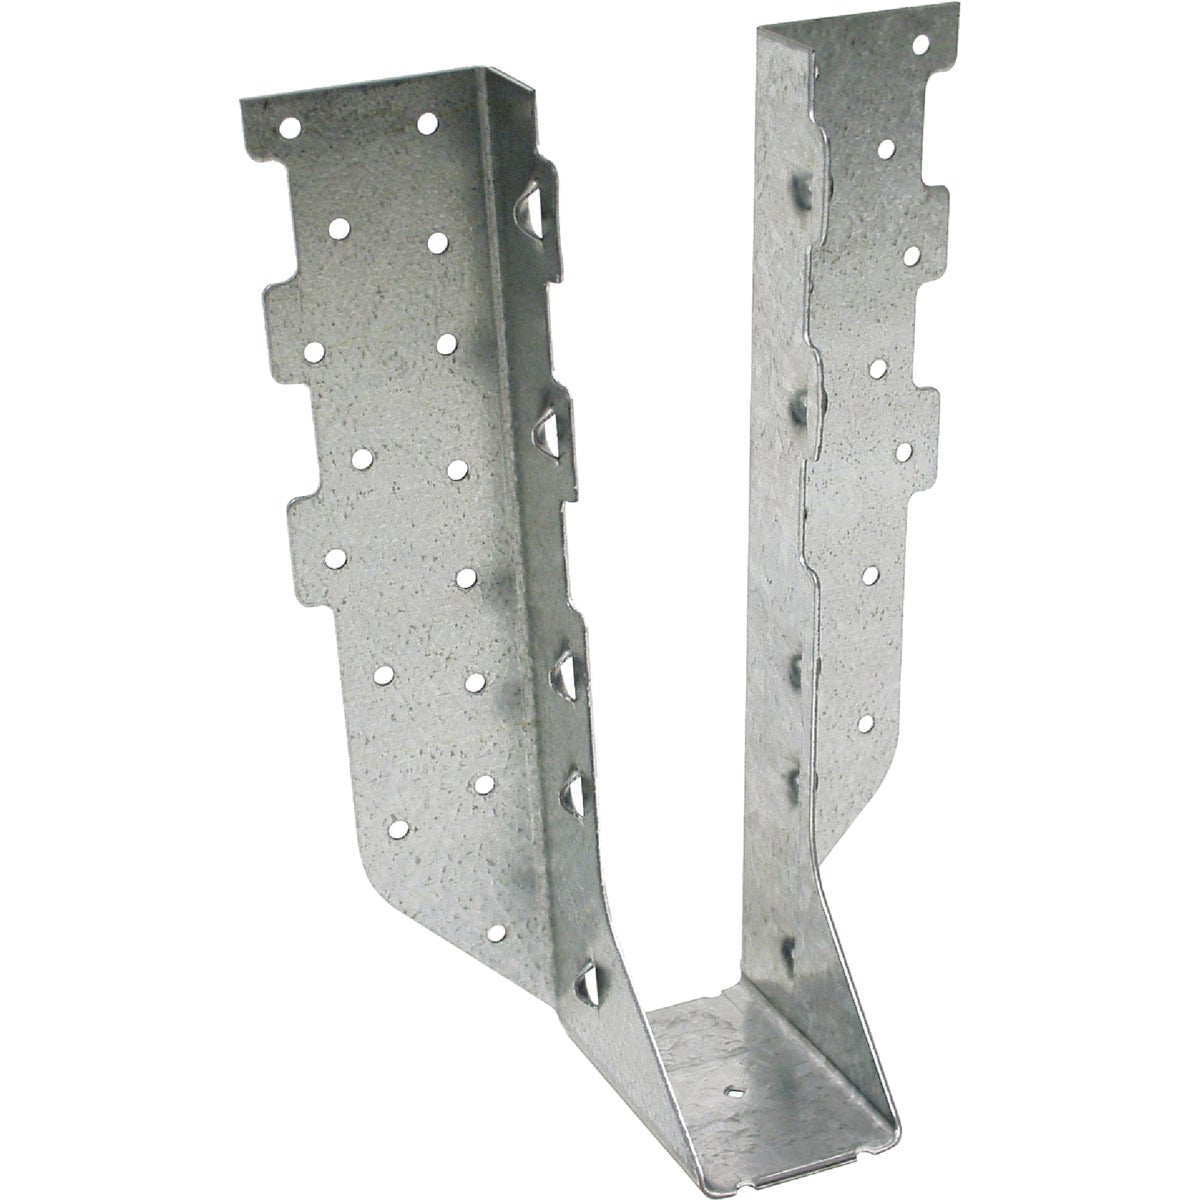 DBL SHEAR JOIST HANGER - HUS1.81/10 by Simpson Strong Tie